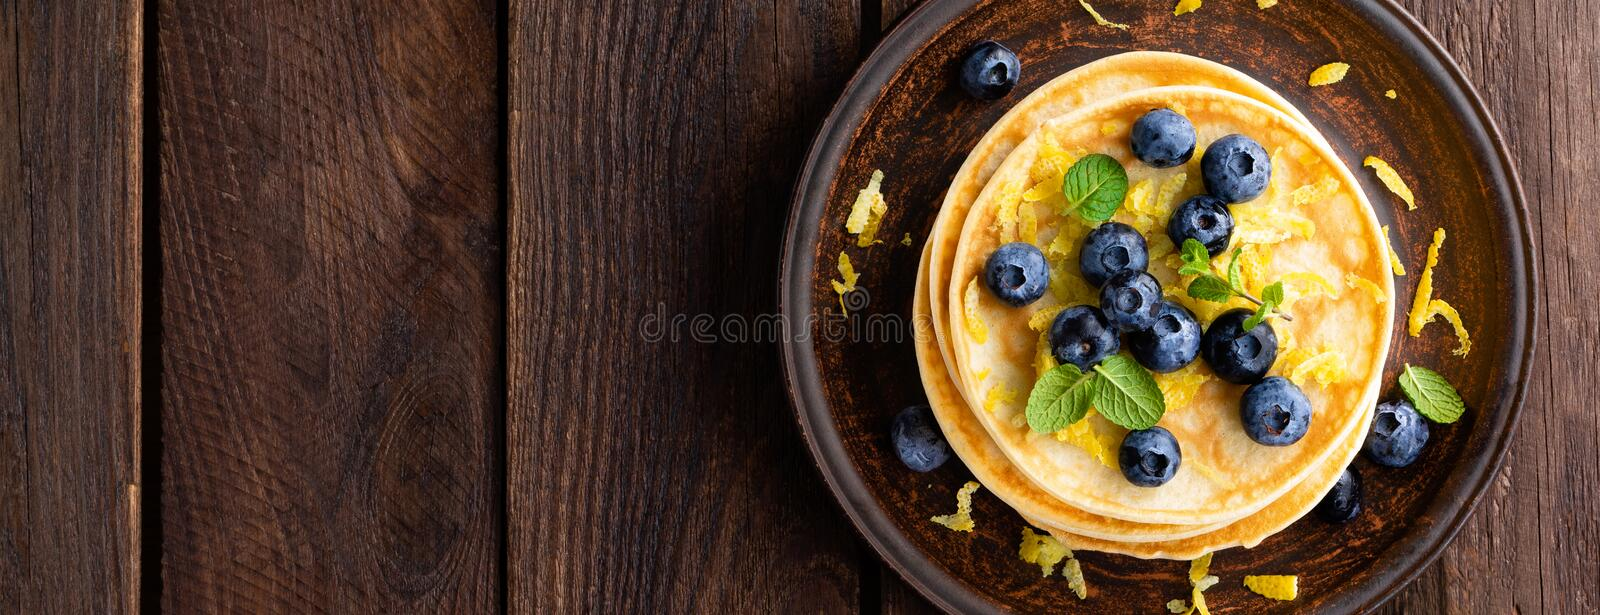 Pancakes with fresh blueberry on wooden rustic background. Top view. Banner. Closeup stock image